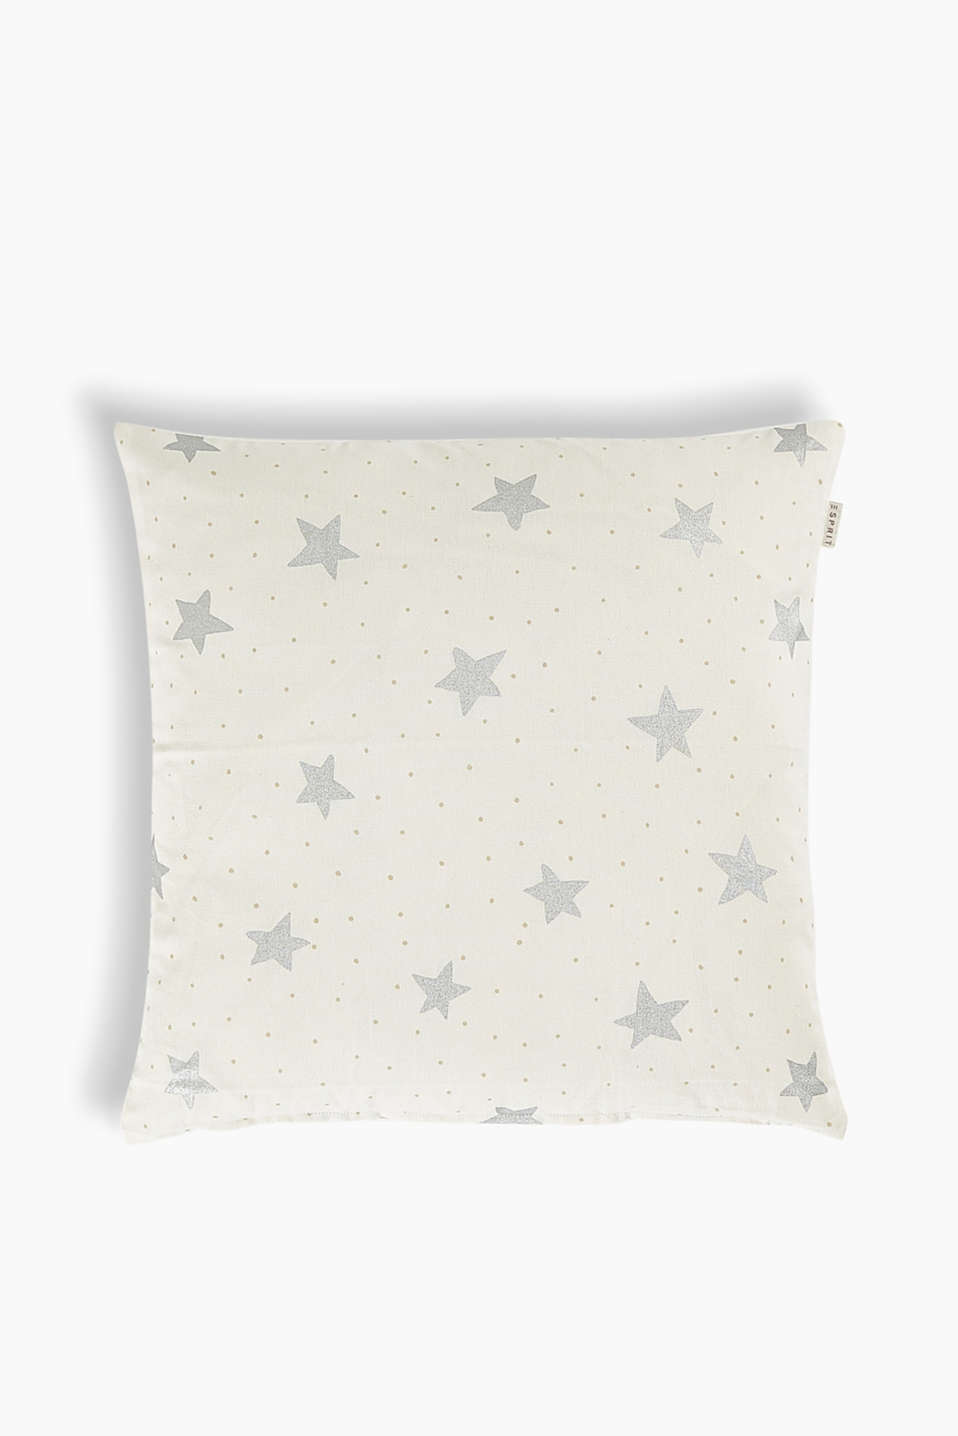 GLISTER Collection - metallic stars and fine polka dots make this cushion cover truly atmospheric and eye-catching.